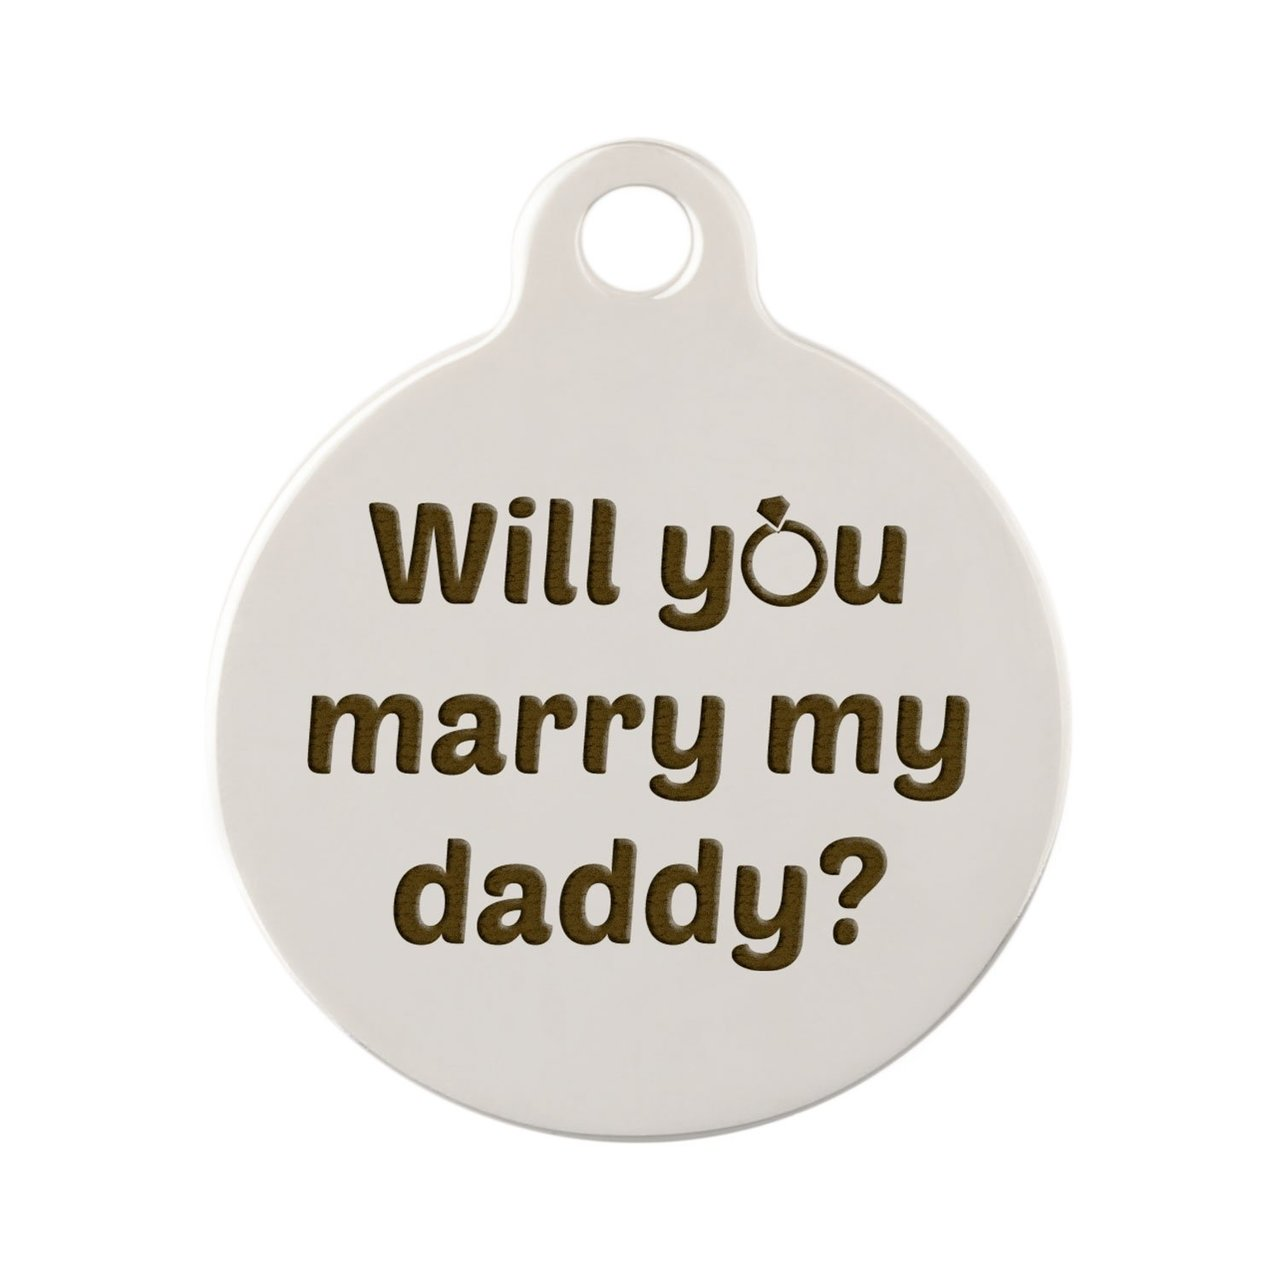 Signature Proposal Dog ID Tags - Will You Marry my Daddy? Nickel Plated